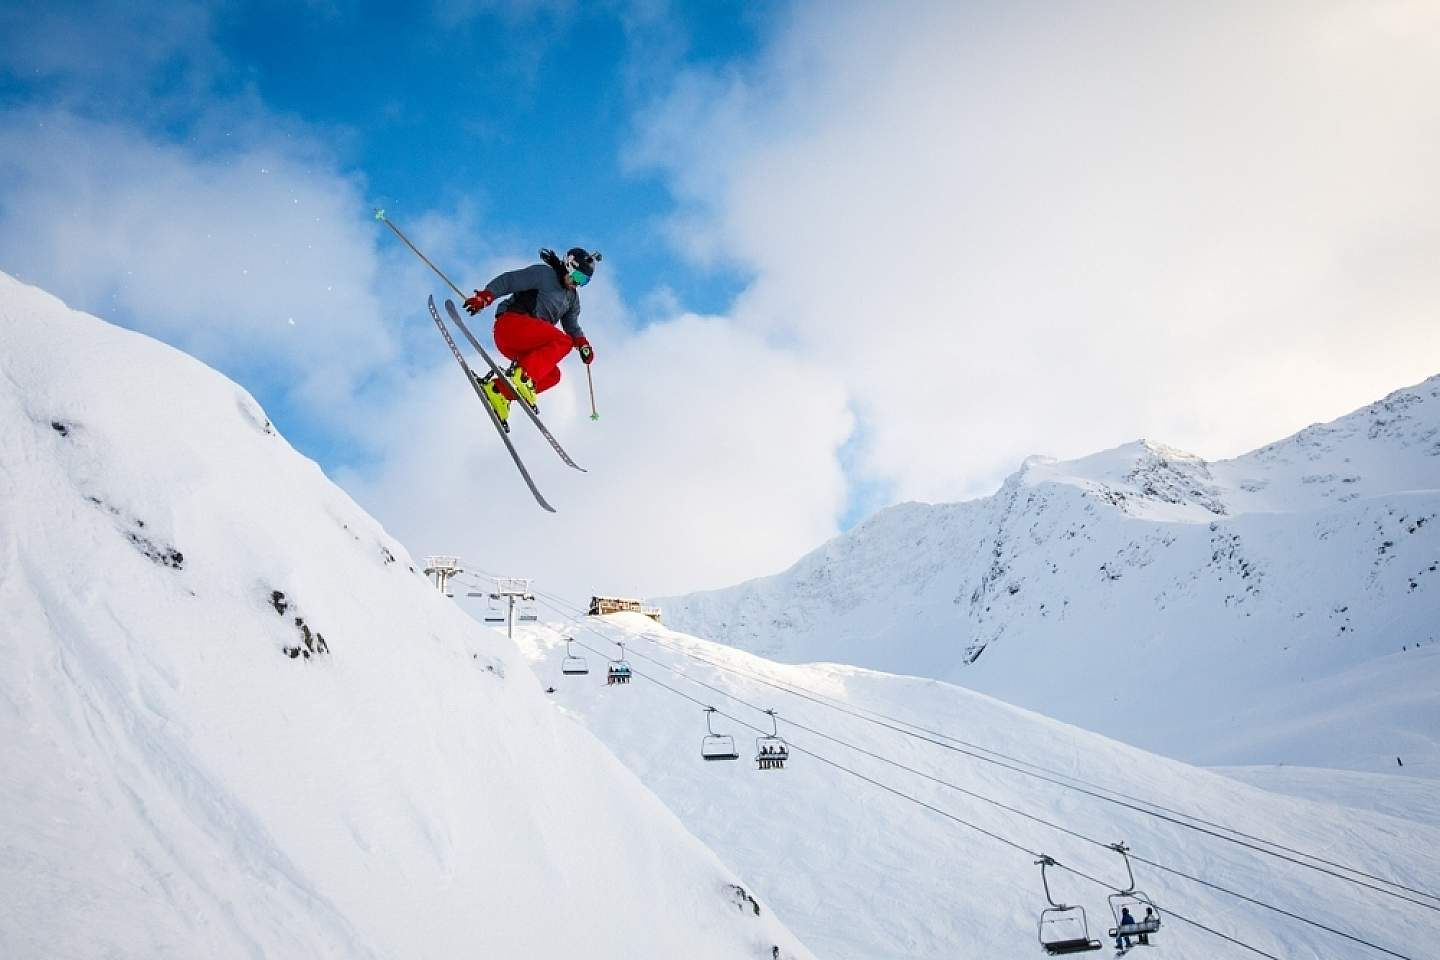 Go downhill or cross-country skiing at the acclaimed Alyeska Resort